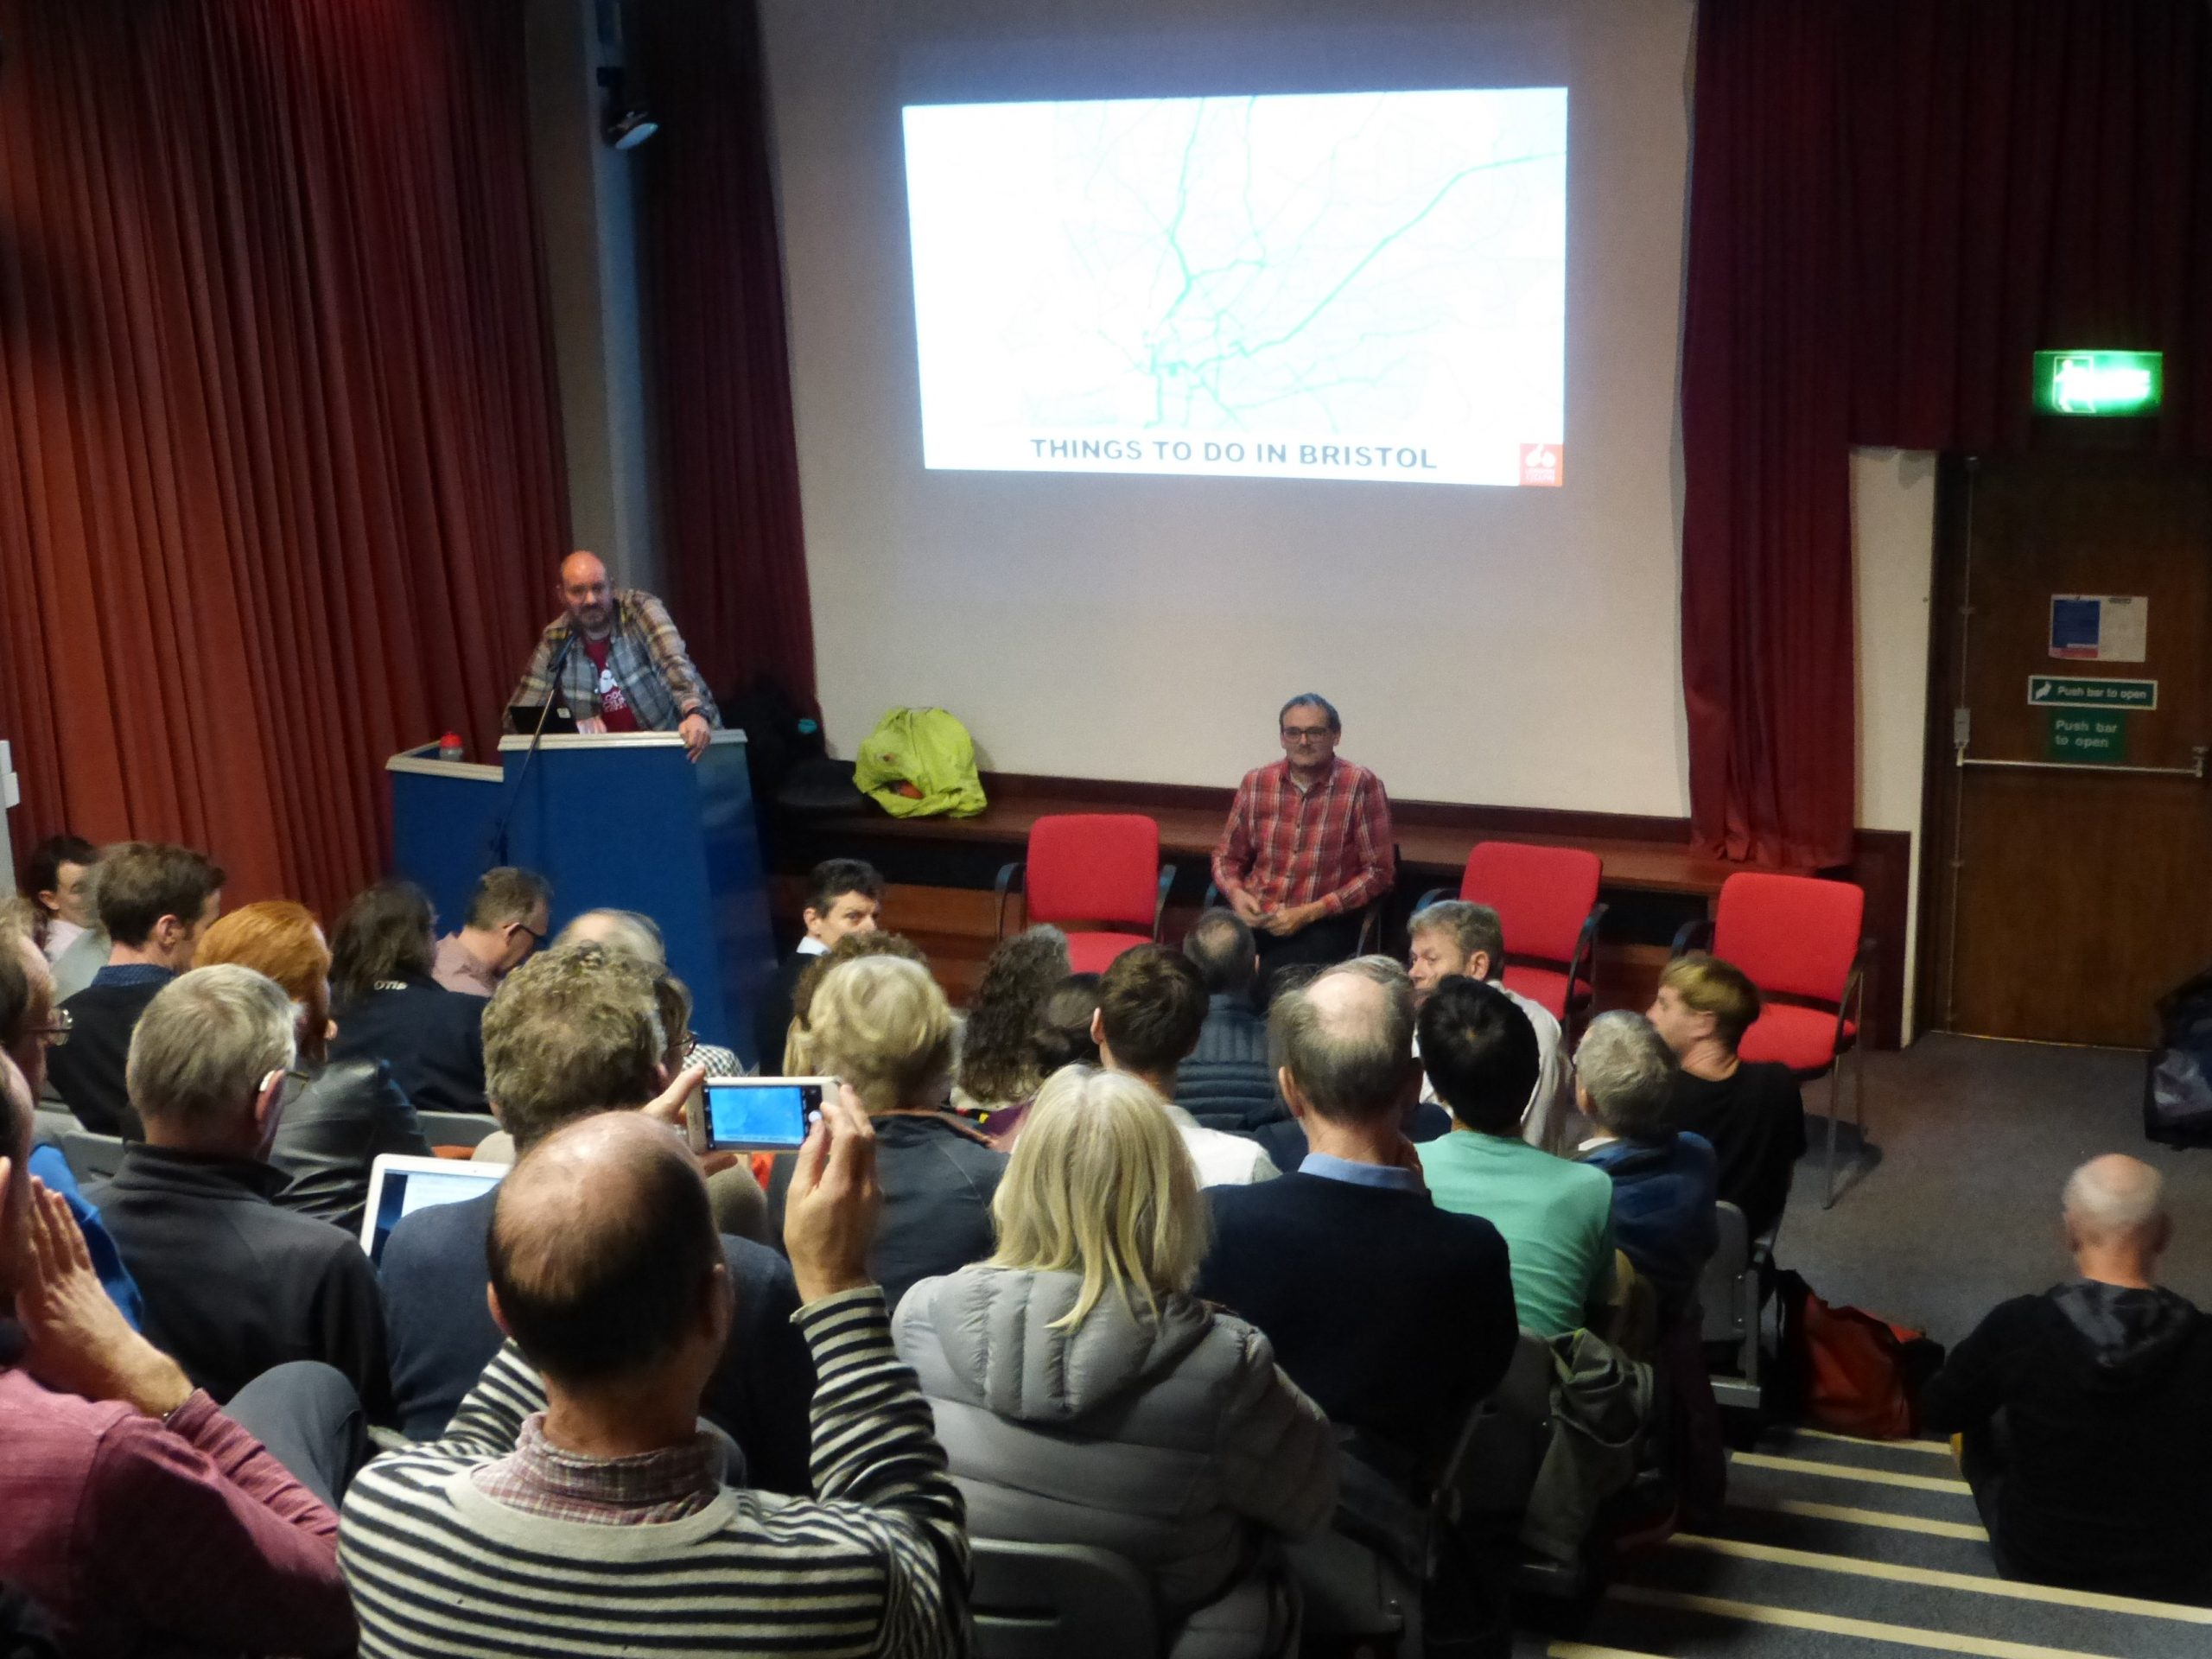 2019 AGM report and review of Simon Munk's presentation